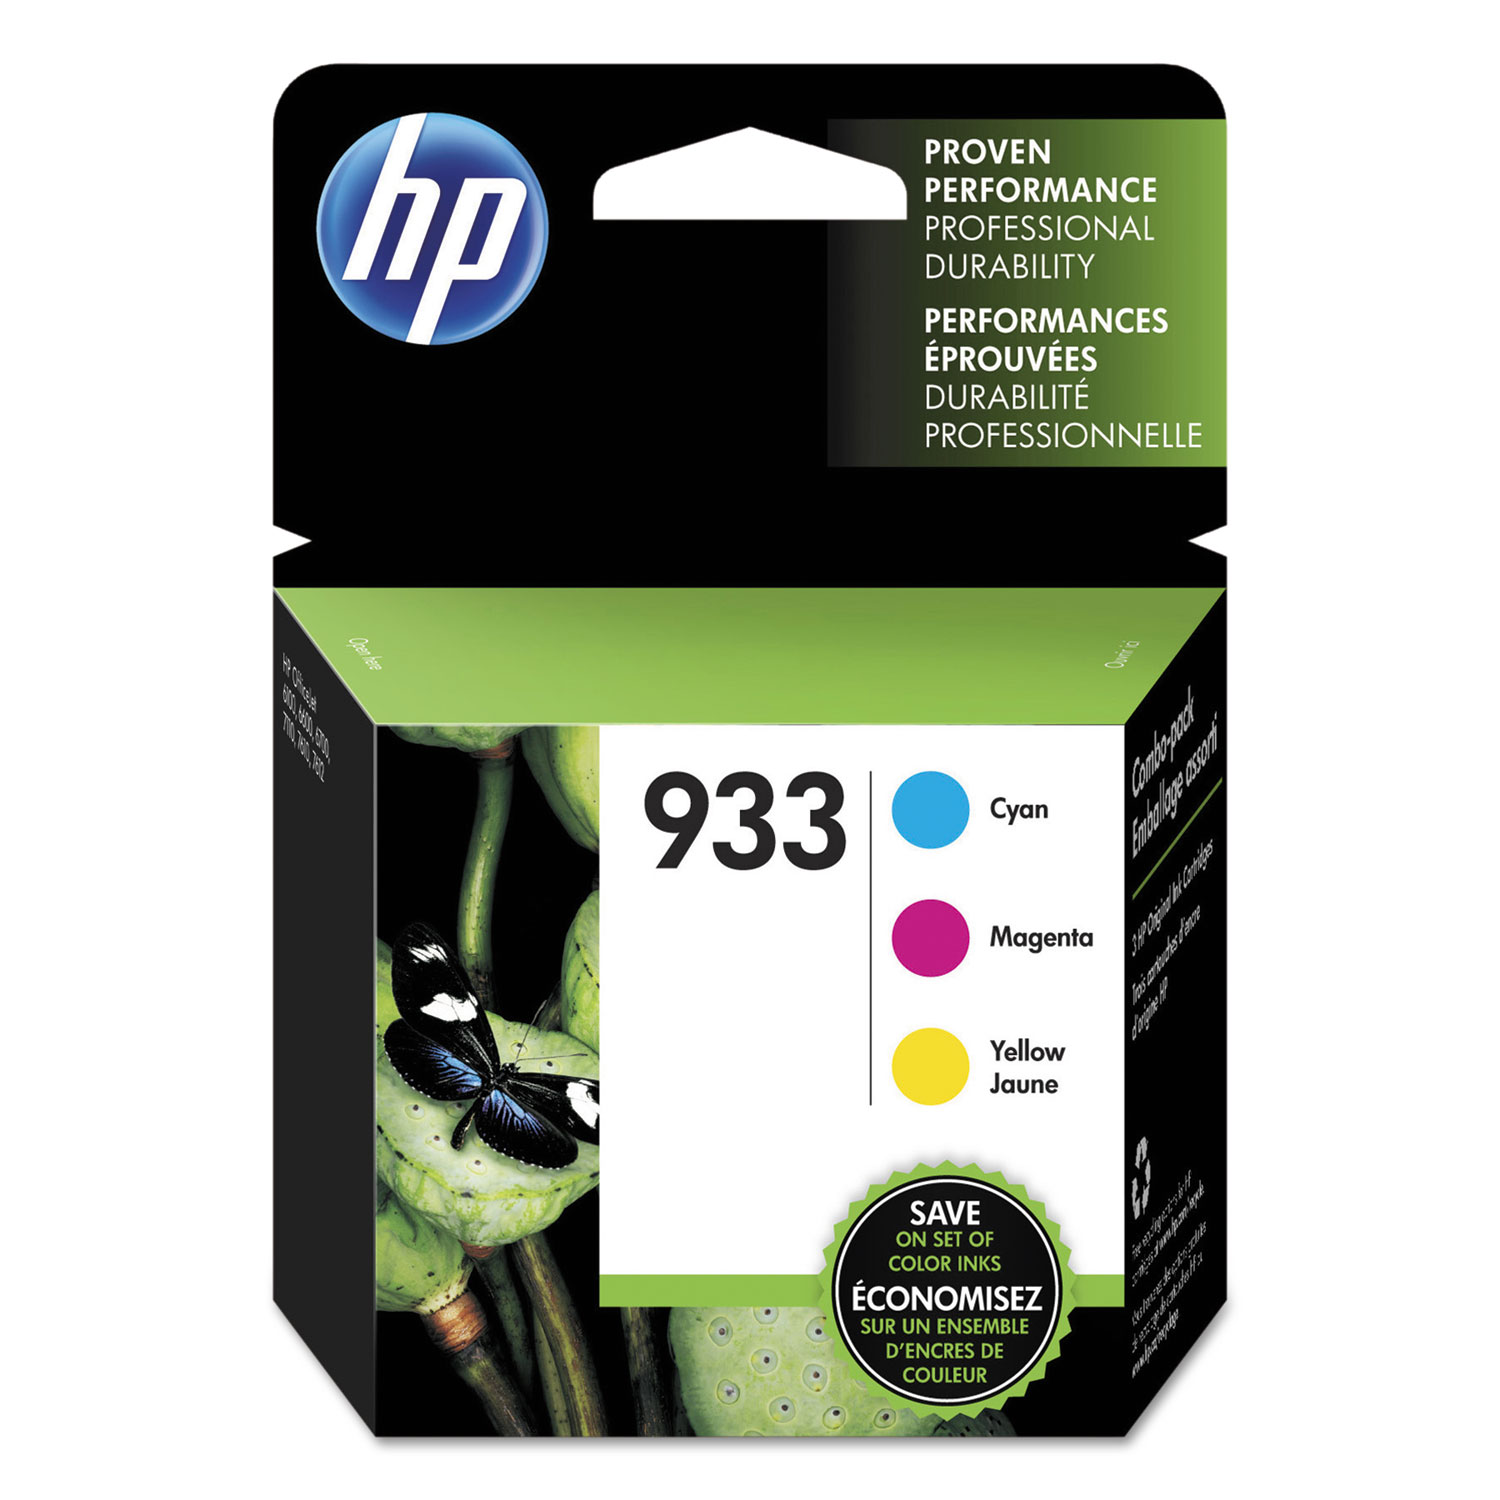 HP 933 N9H56FN Cyan, Magenta, Yellow Original Ink Cartridge